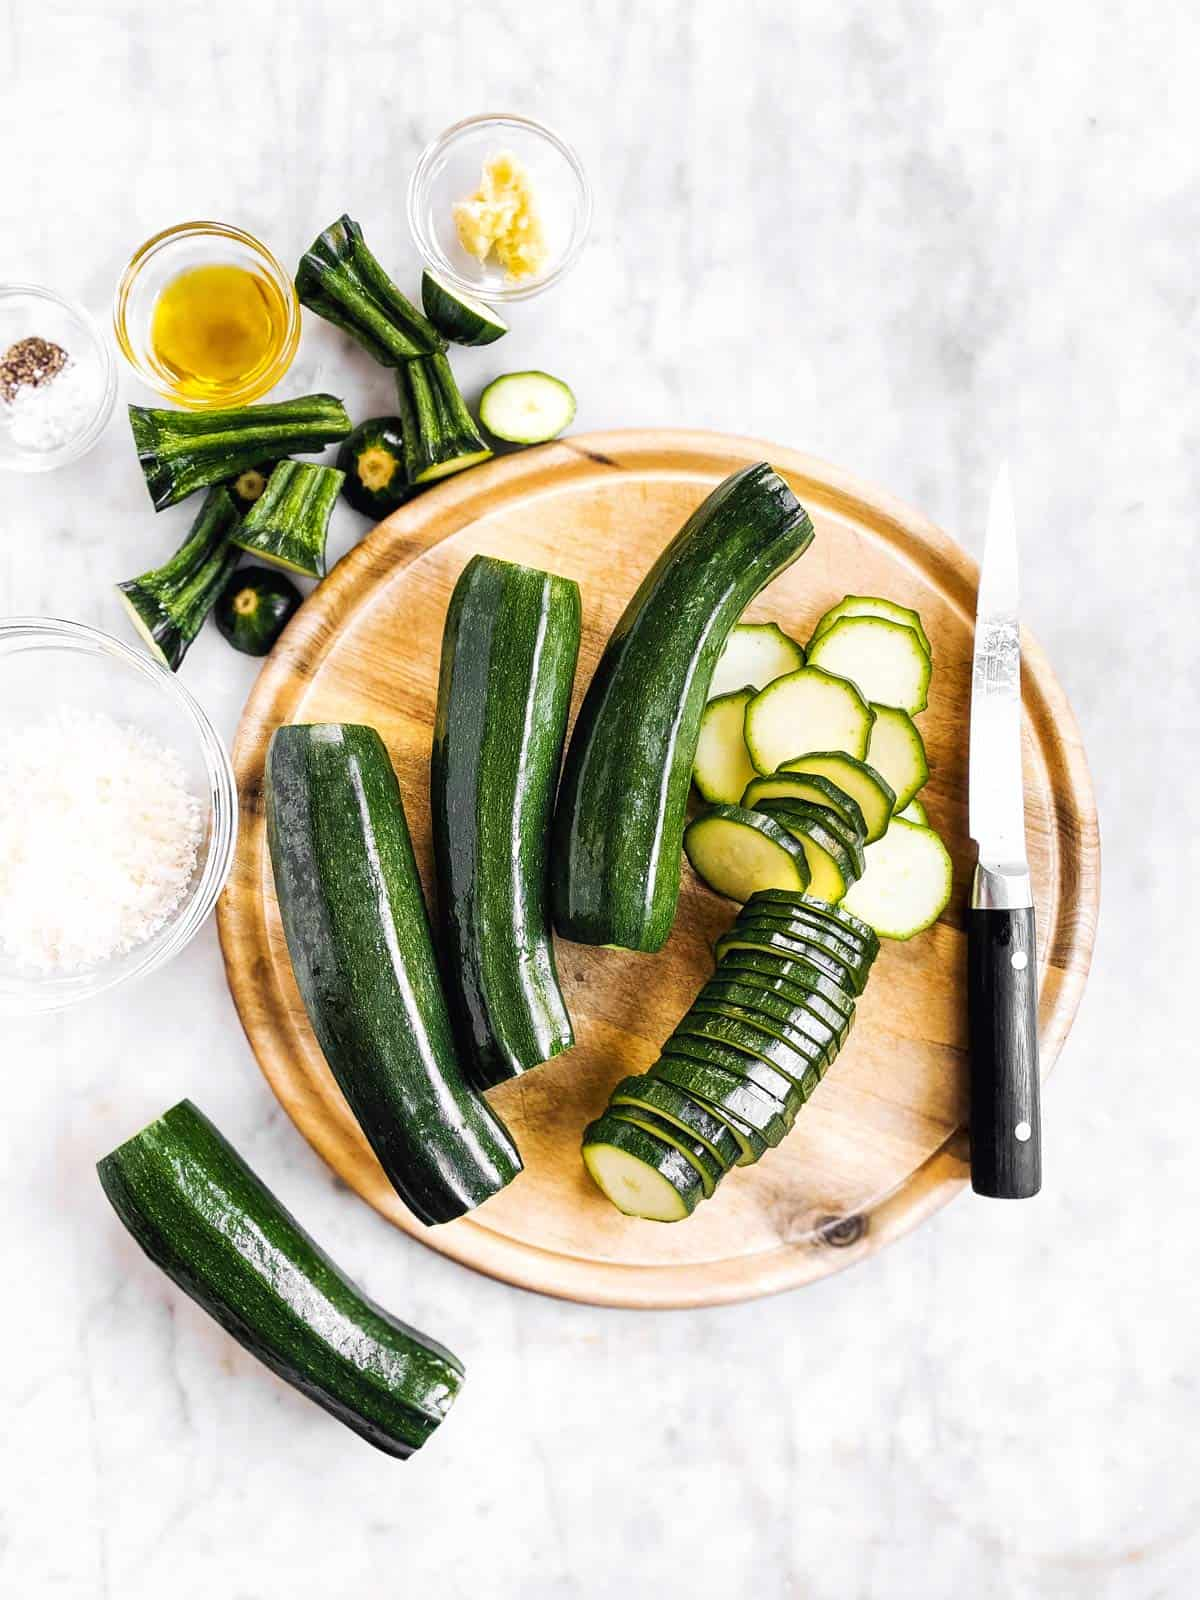 wooden board with partly sliced zucchini and a knife